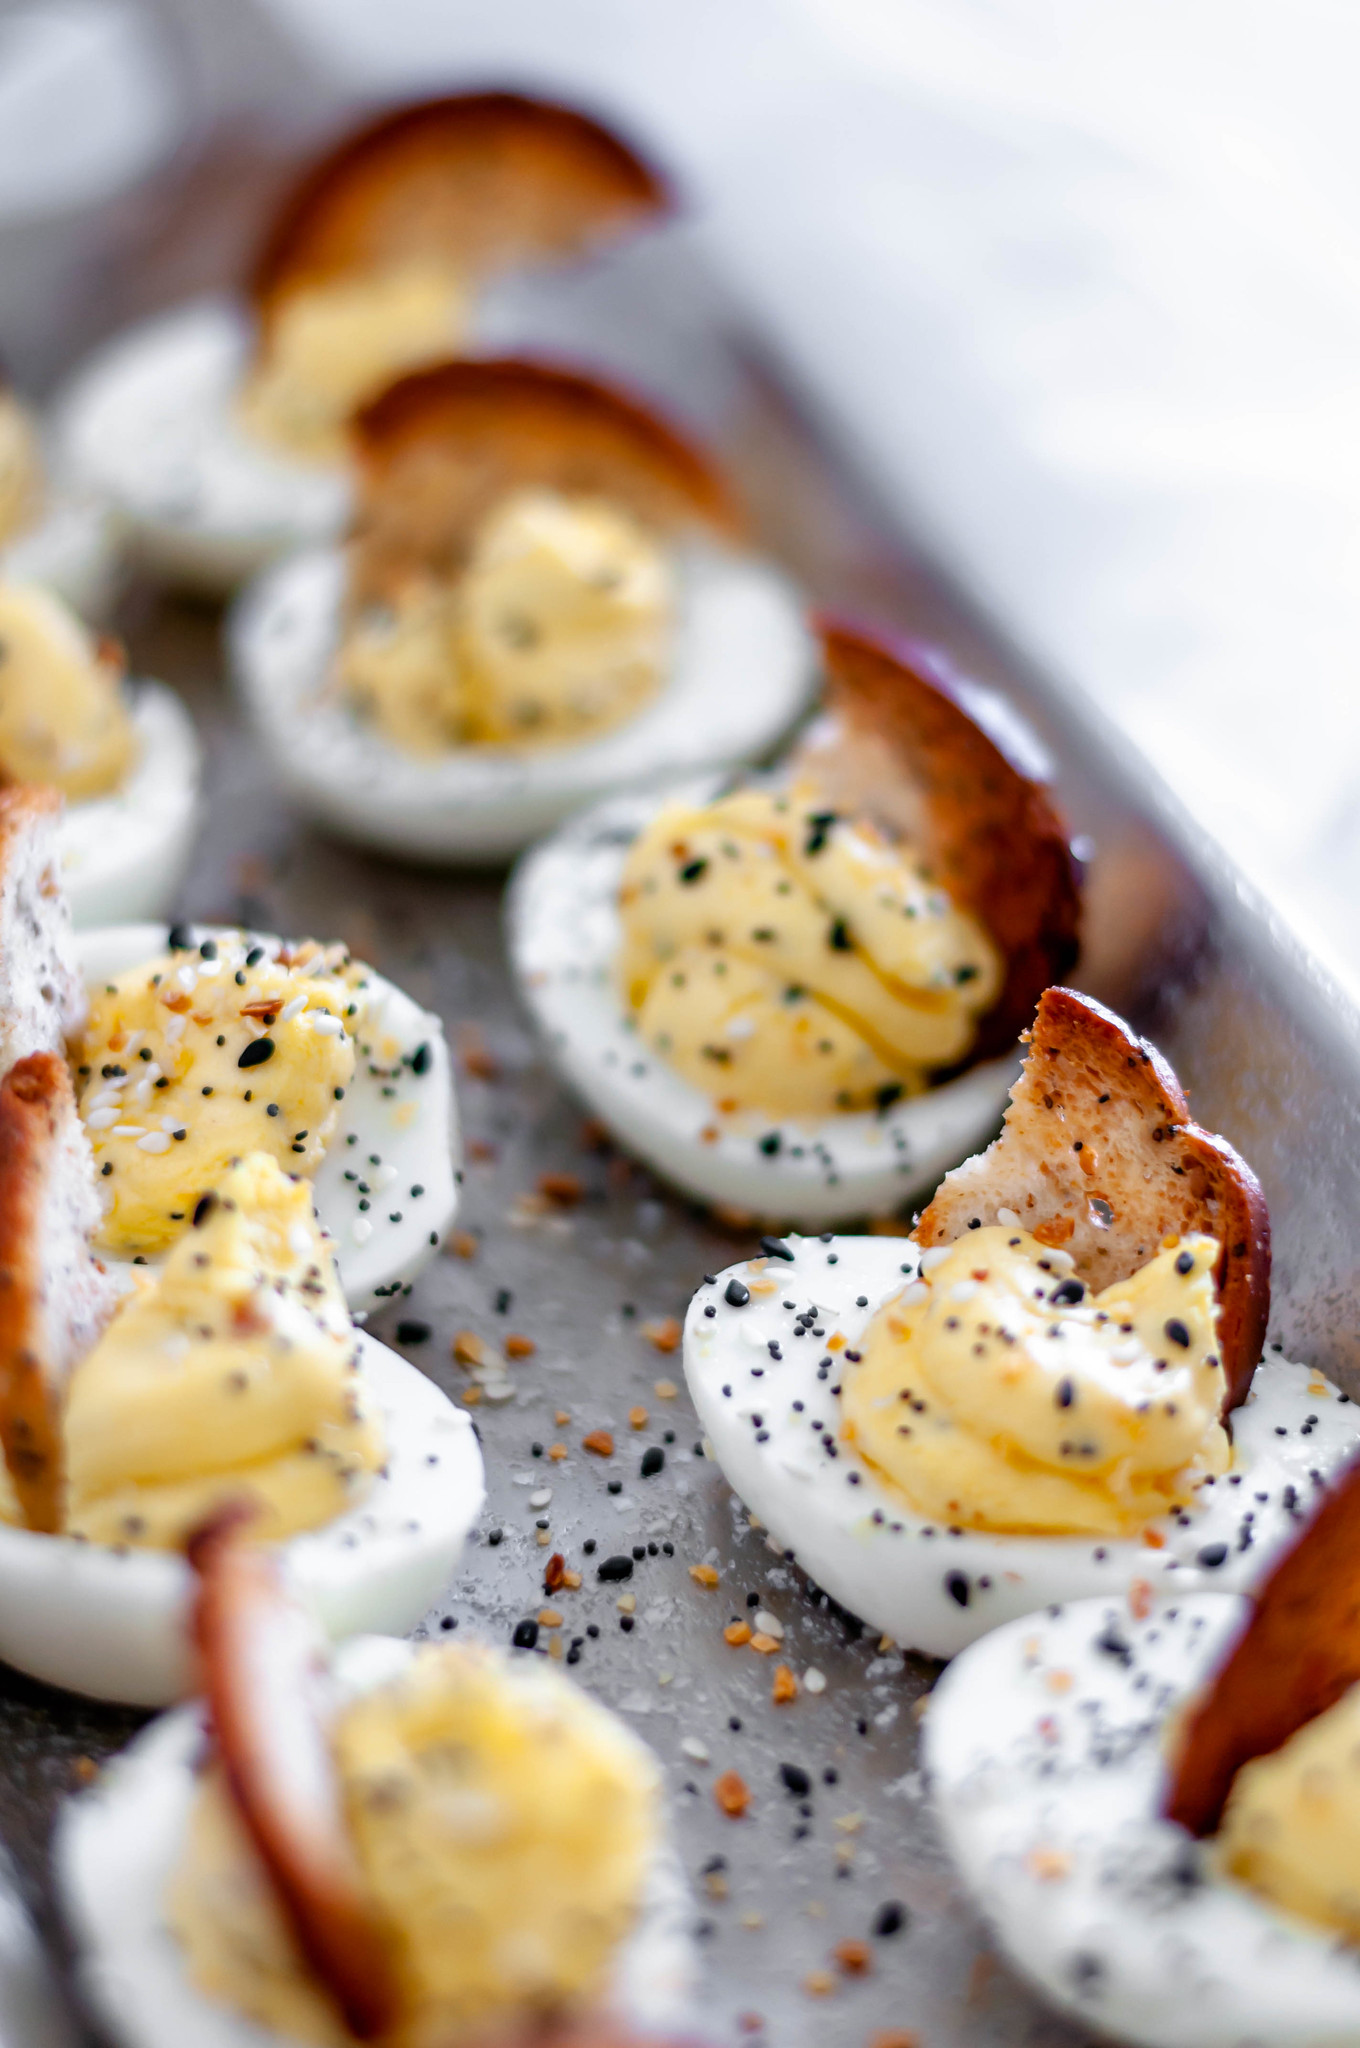 Everything Bagel Deviled Eggs are packed full of flavor. Cream cheese in the egg filling adds an extra creamy texture. Everything bagel seasoning adds tons of flavor. A bagel chip provides a nice crunch to the soft deviled egg.